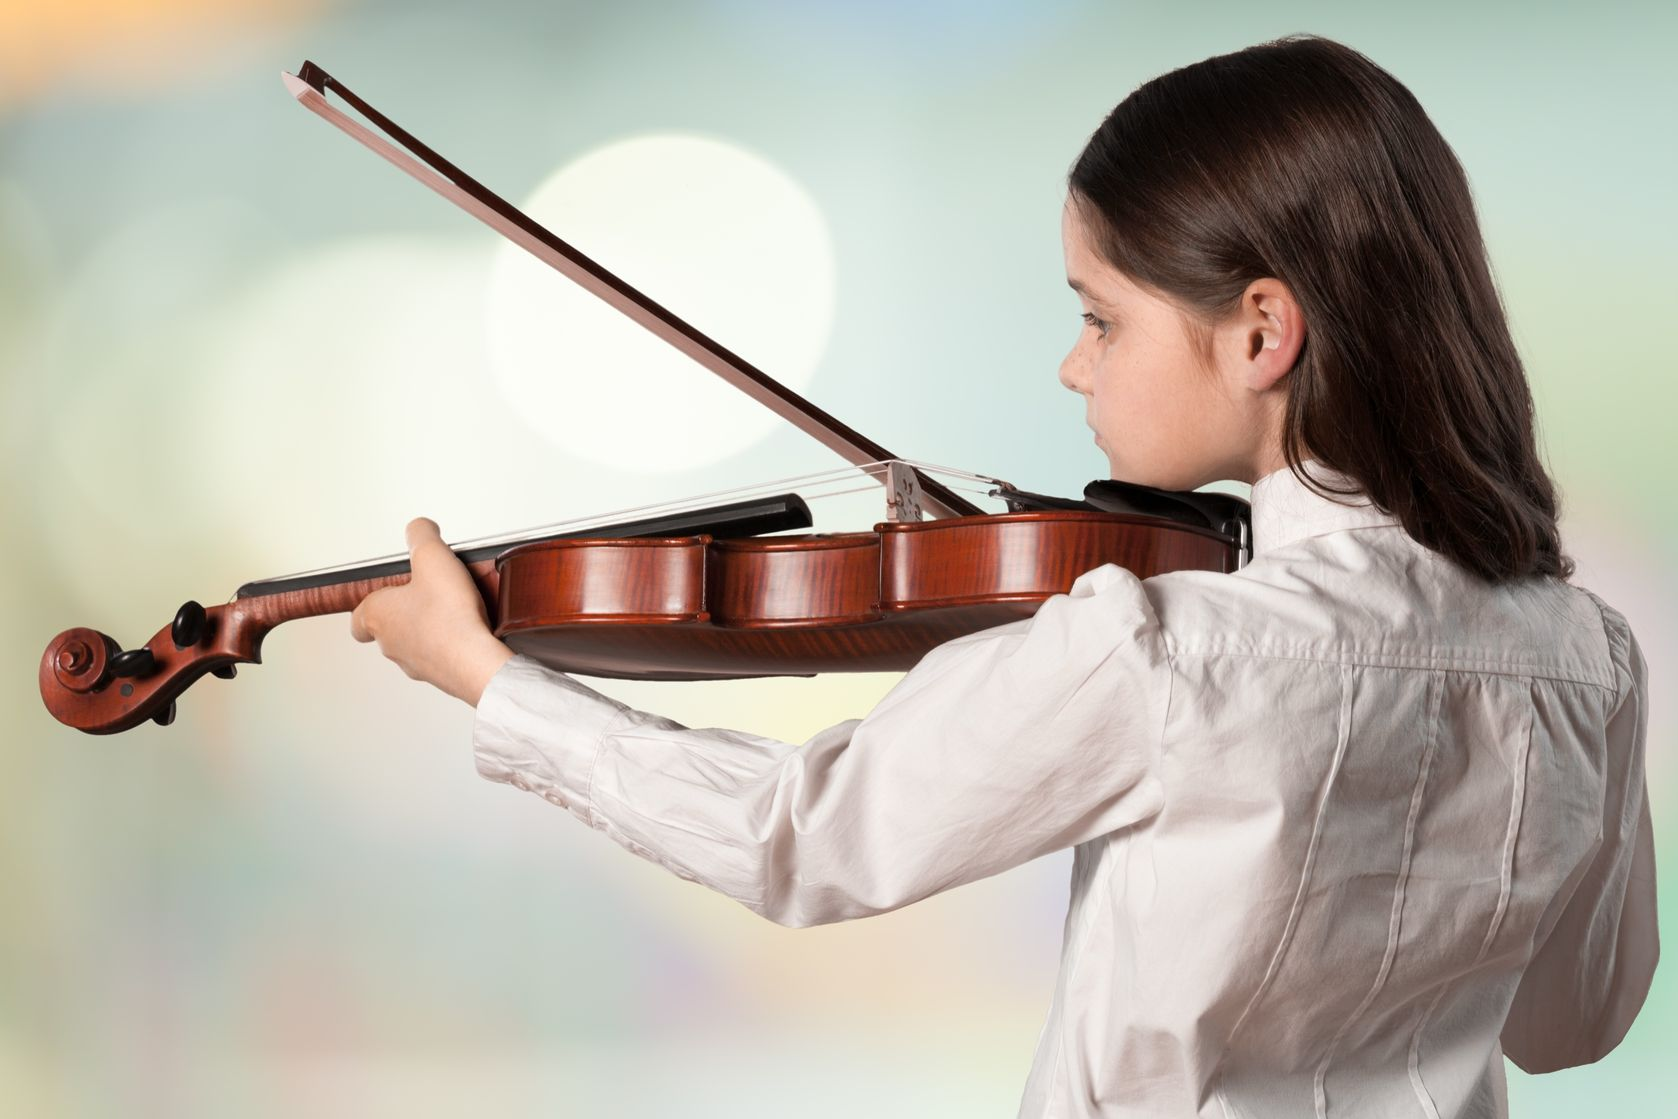 How to Become an Expert in Playing More Than One Musical Instrument?